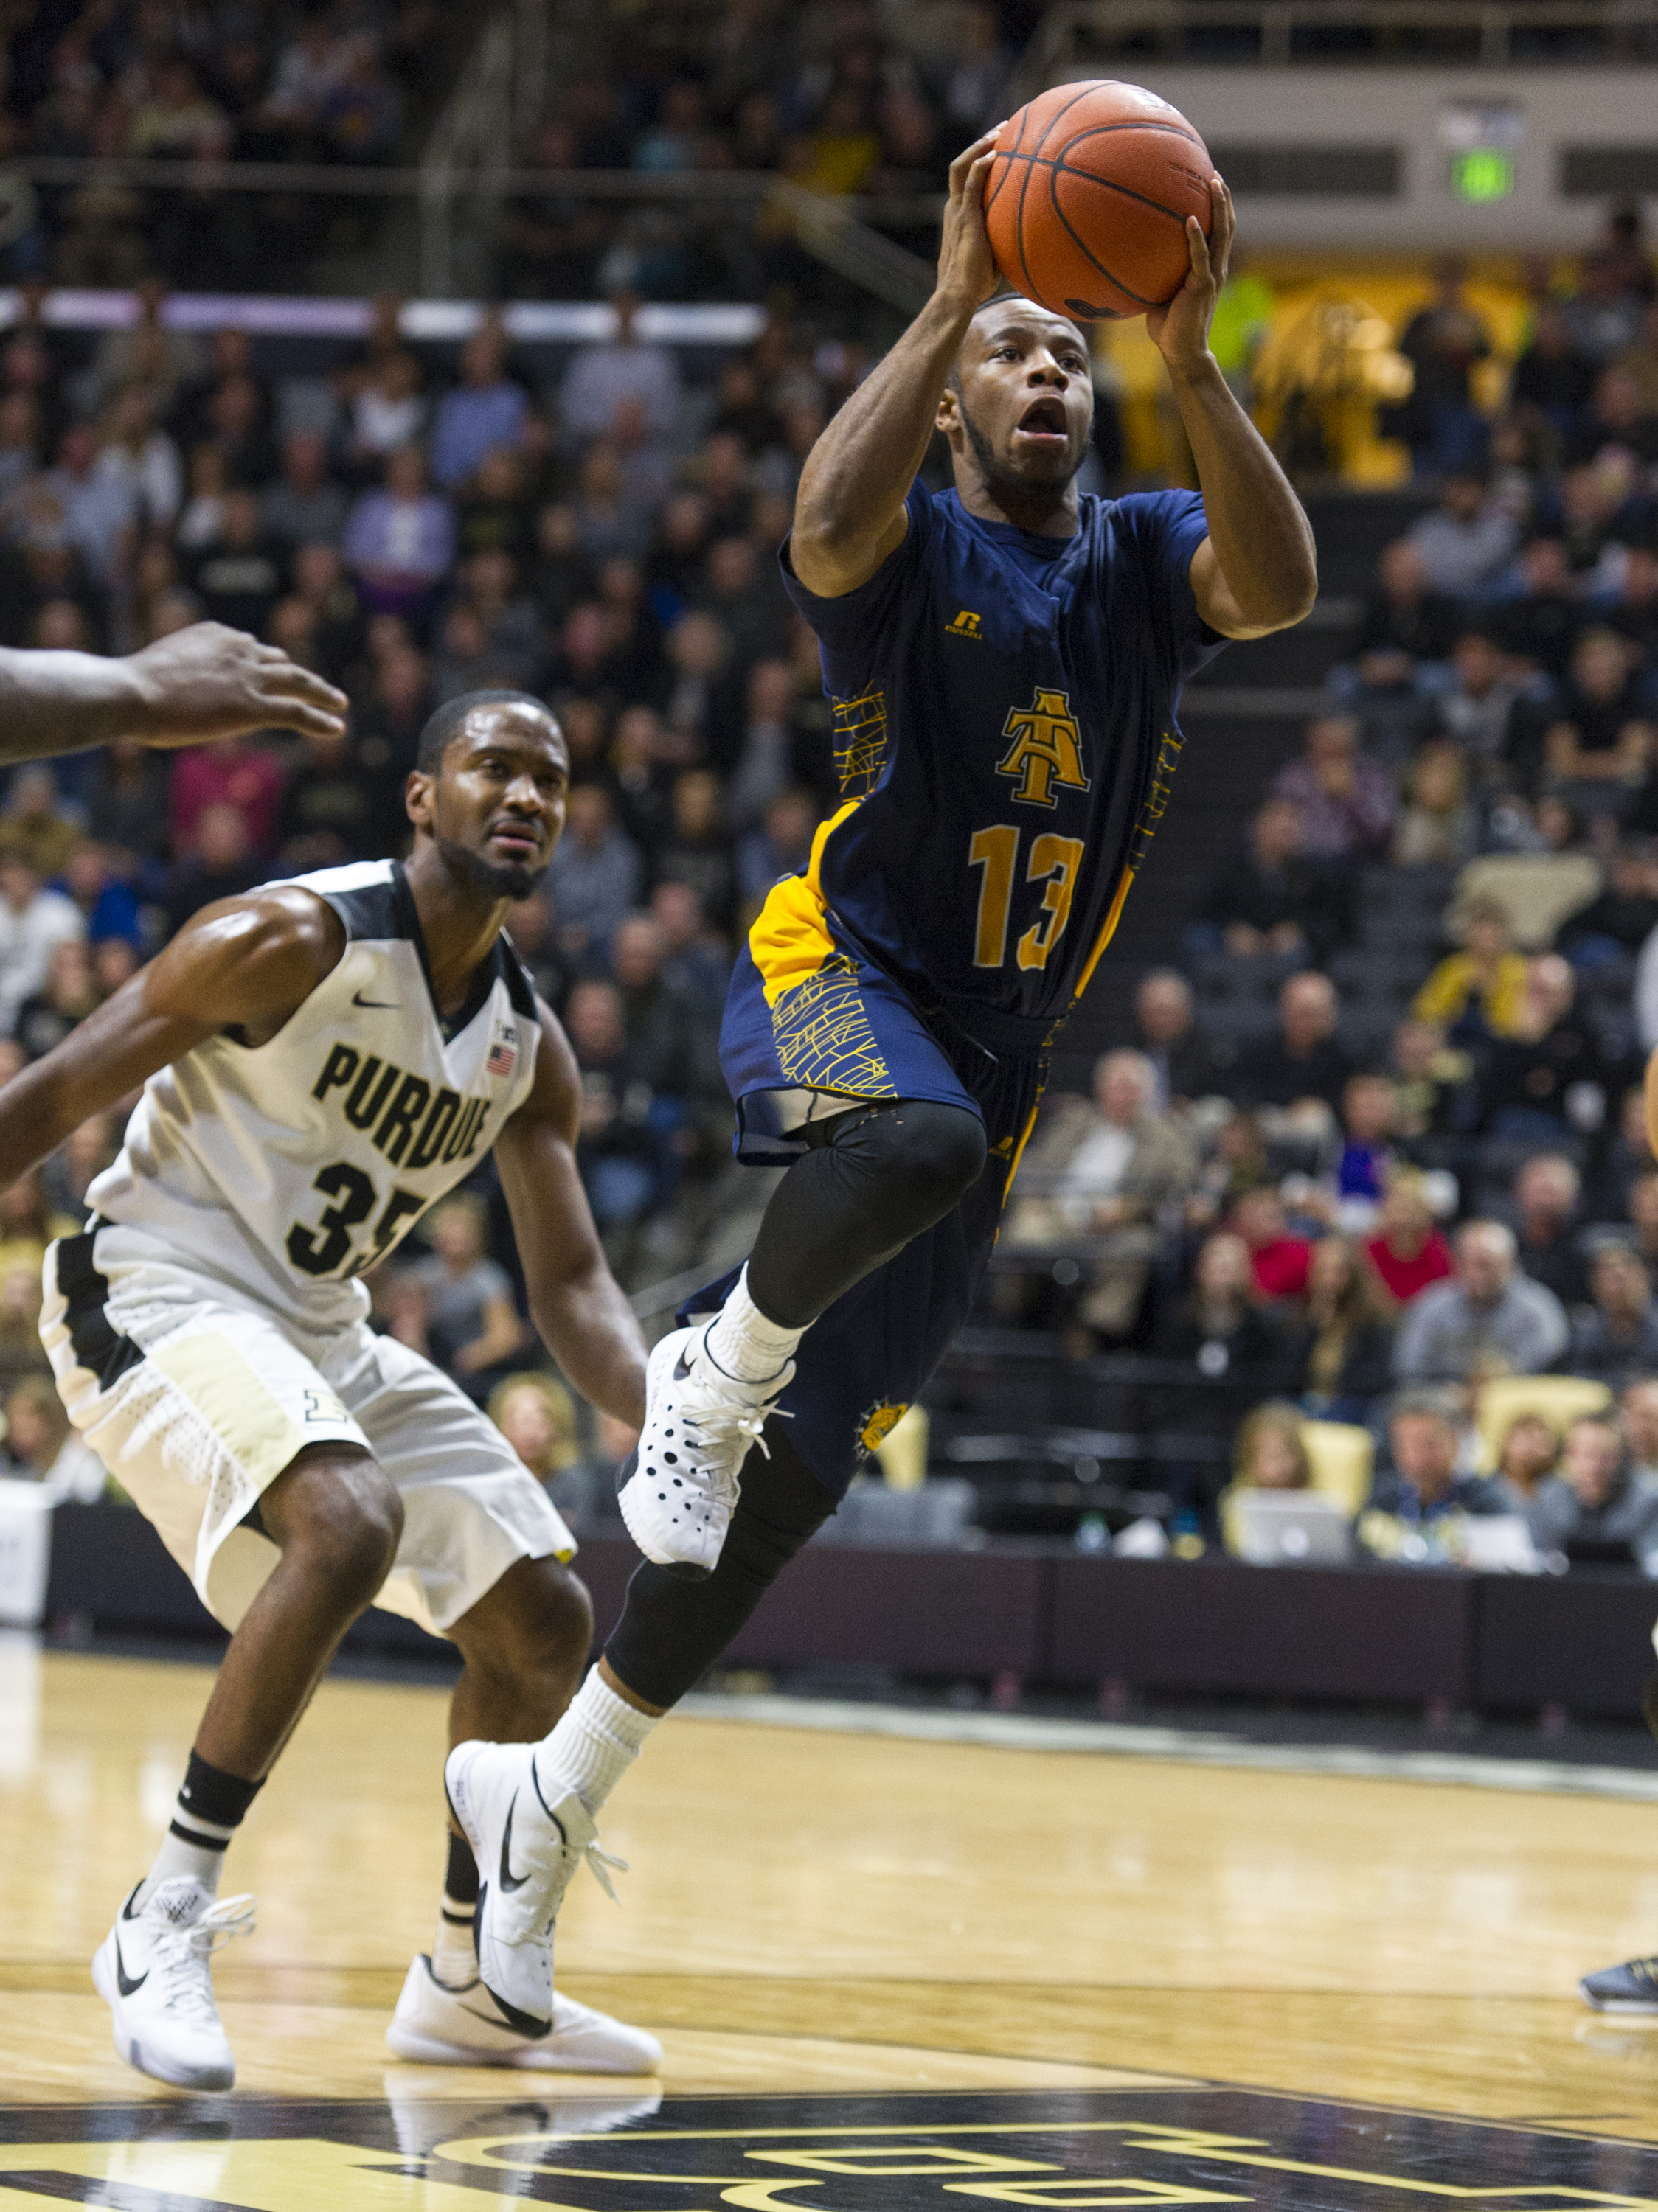 North Carolina A&T guard Austin Williams (13) races past Purdue guard Rapheal Davis (35) in an effort to get off a last-second shot to end the first half of an NCAA college basketball game, Friday, Nov. 13, 2015, in West Lafayette, Ind. (AP Photo/Doug McS